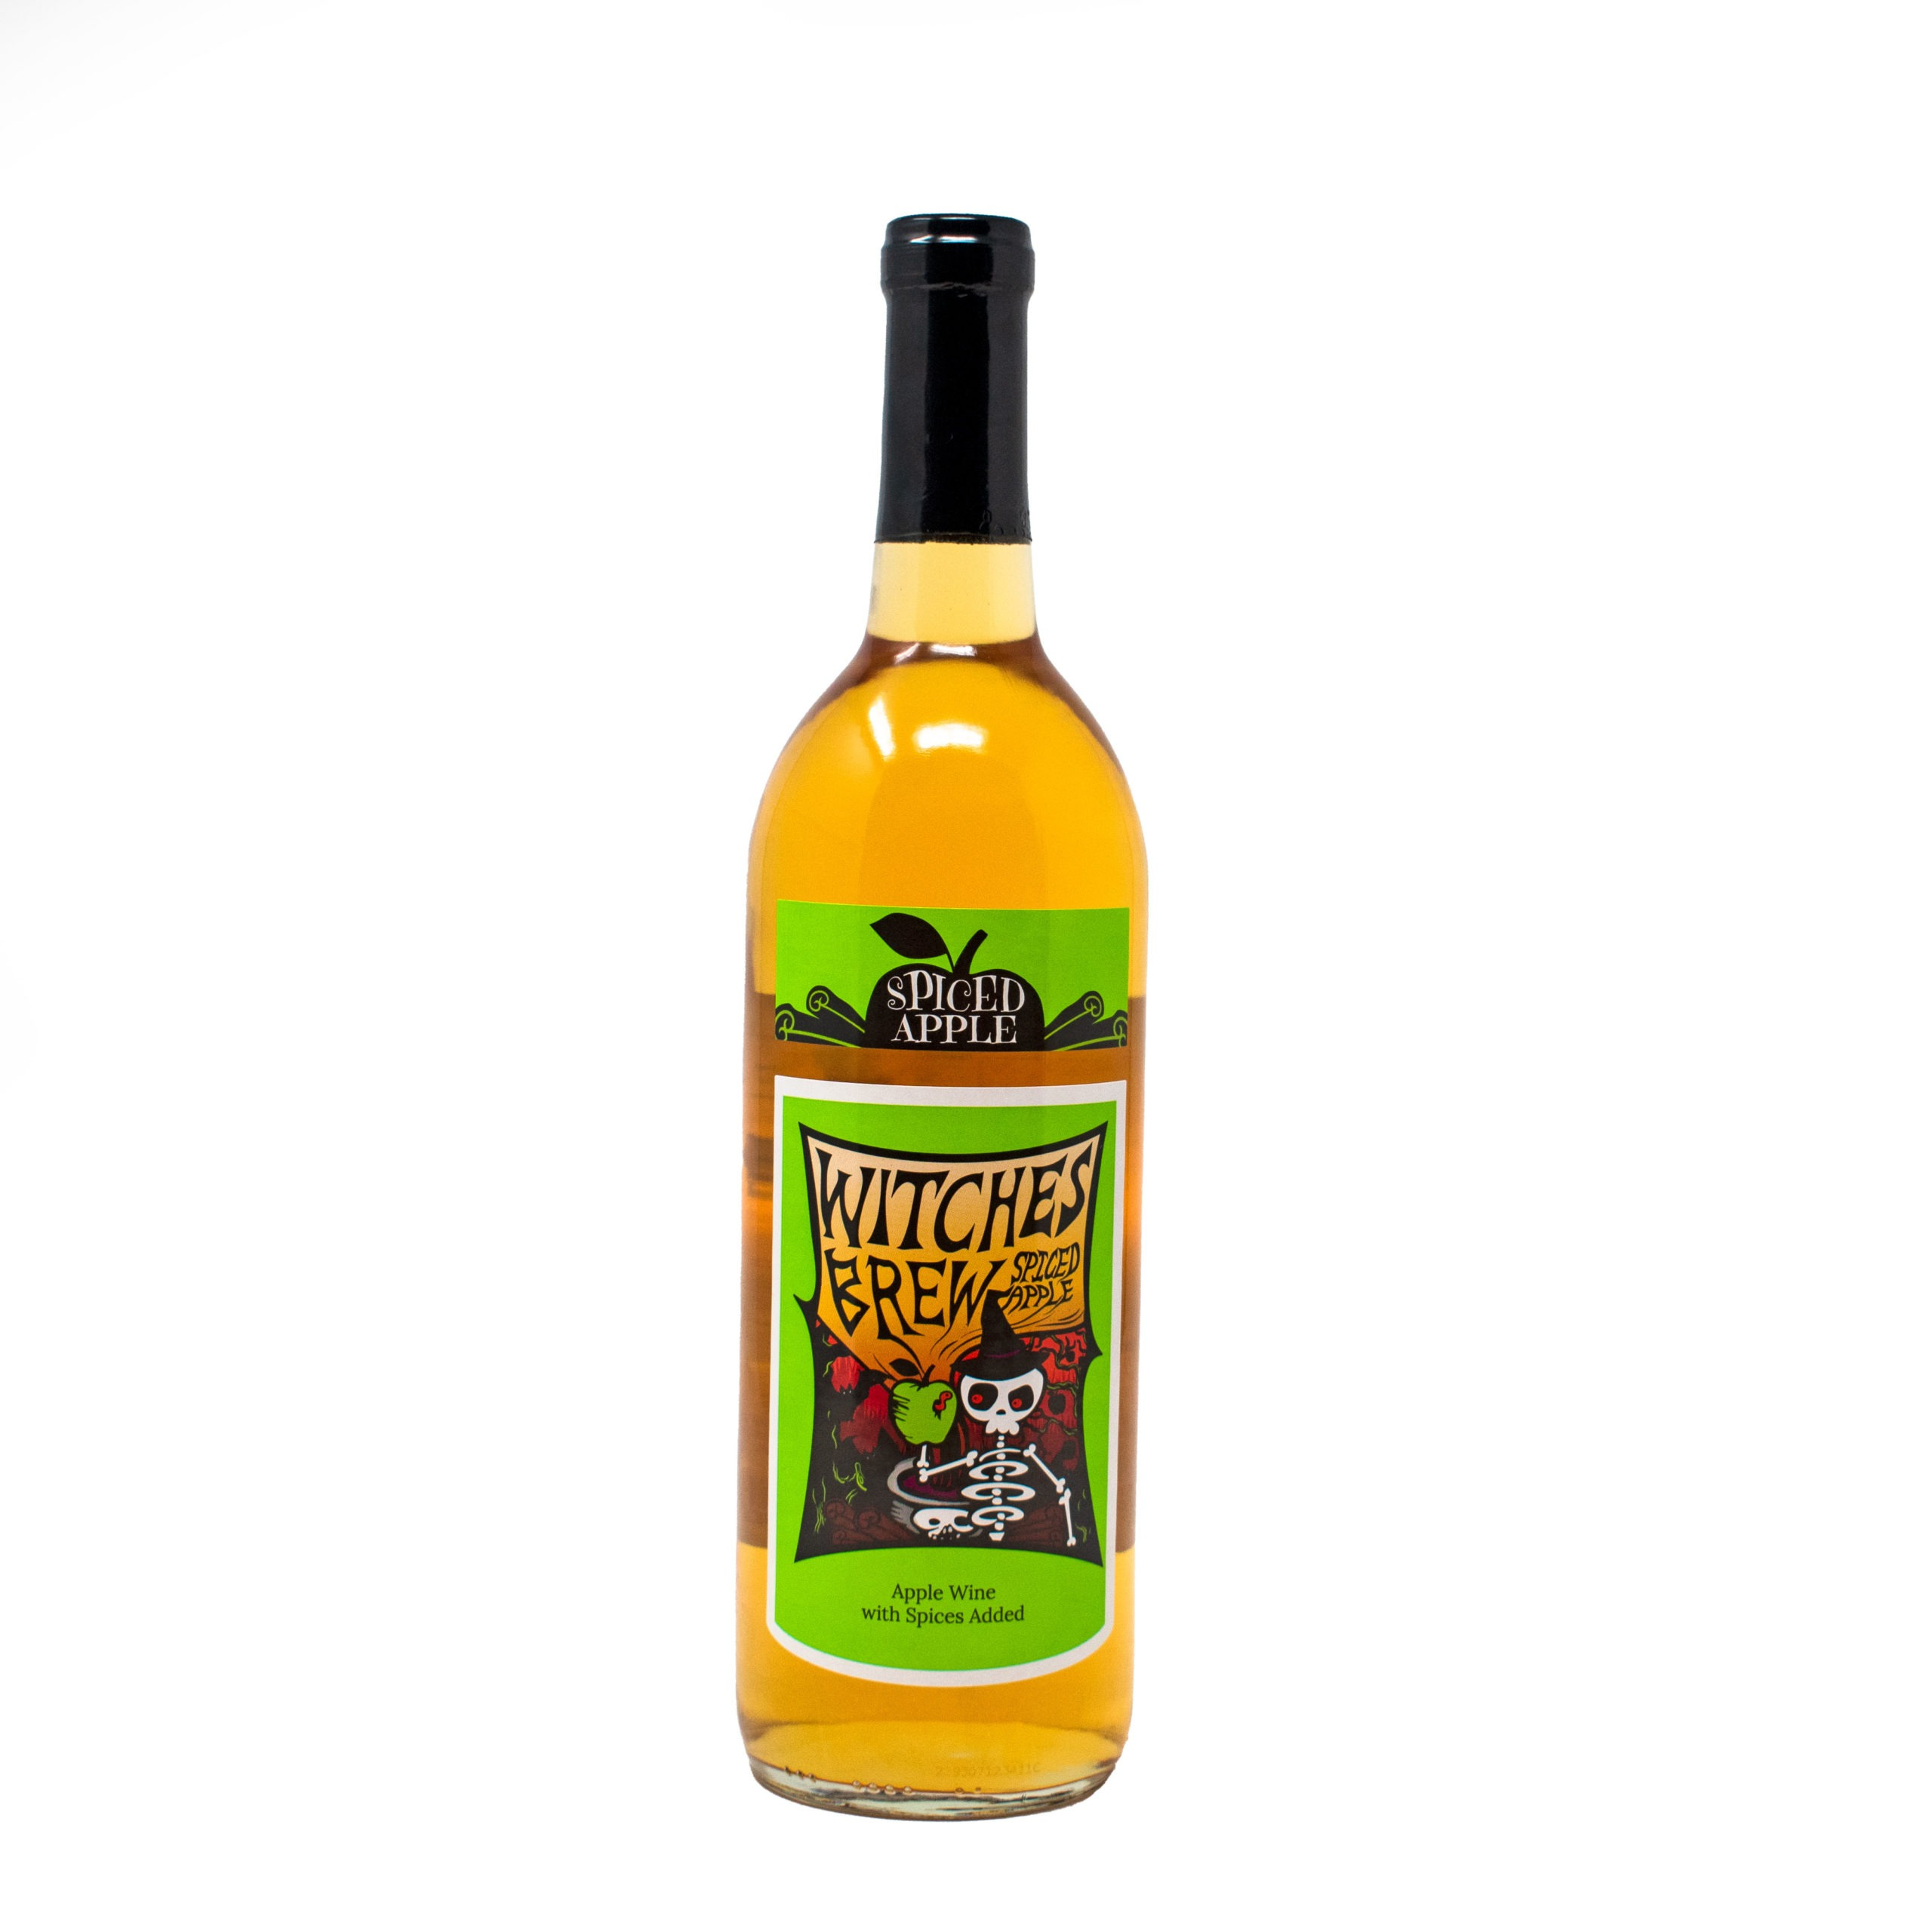 Witches Brew Spiced Apple